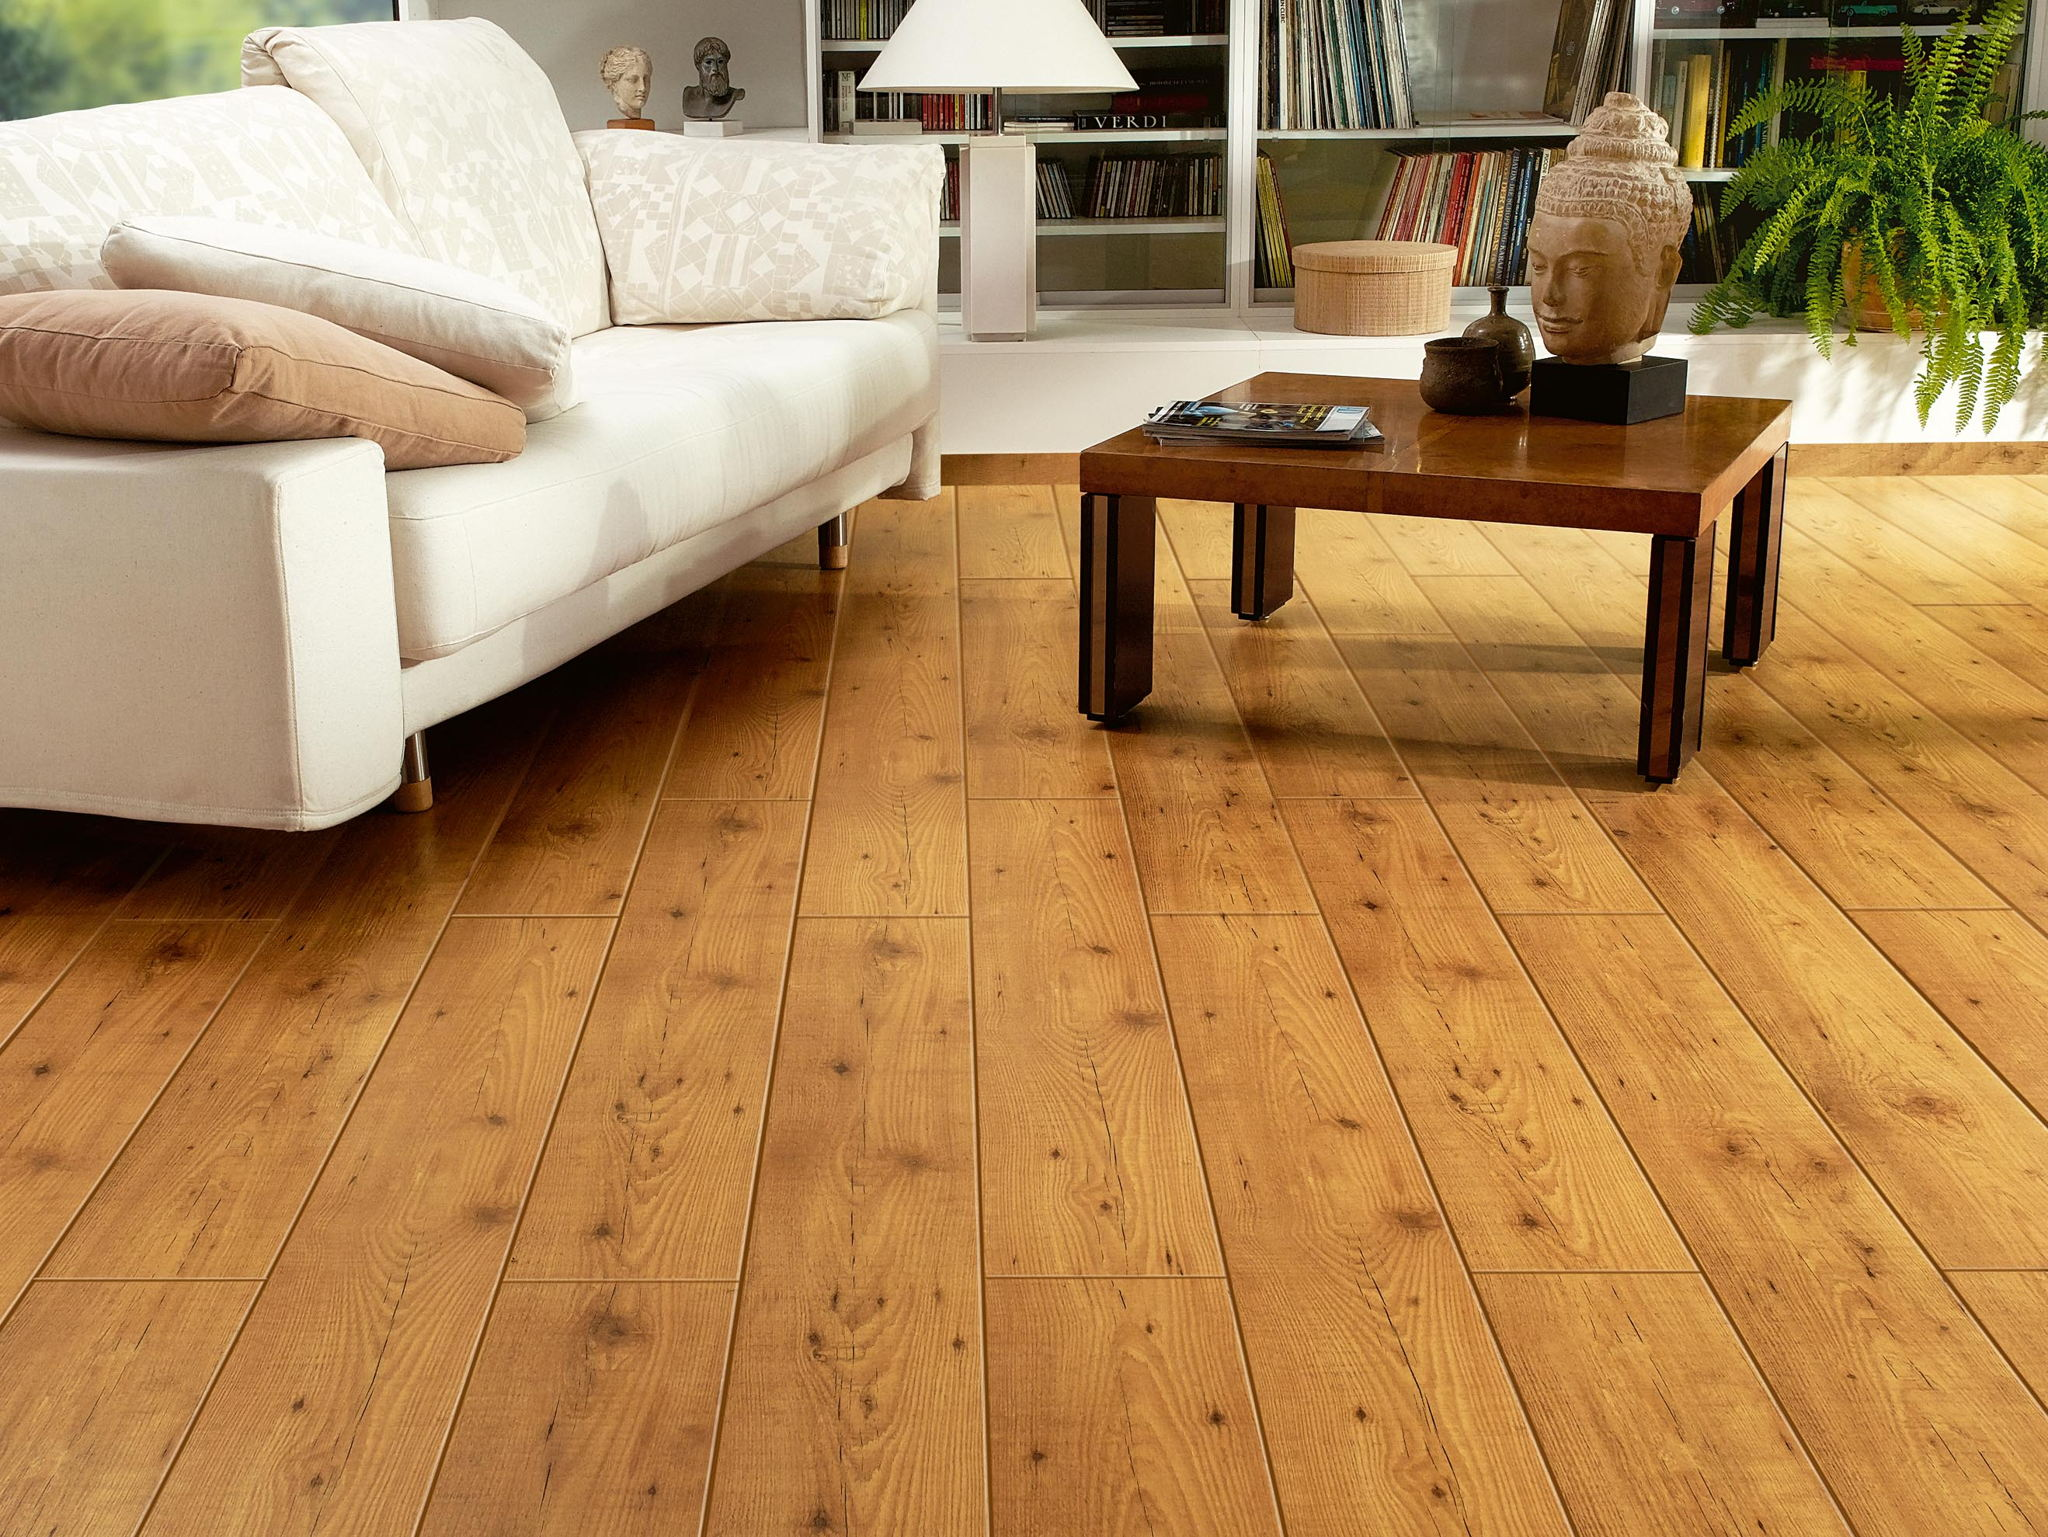 what-to-consider-before-choosing-wooden-flooring -curtainsnmore